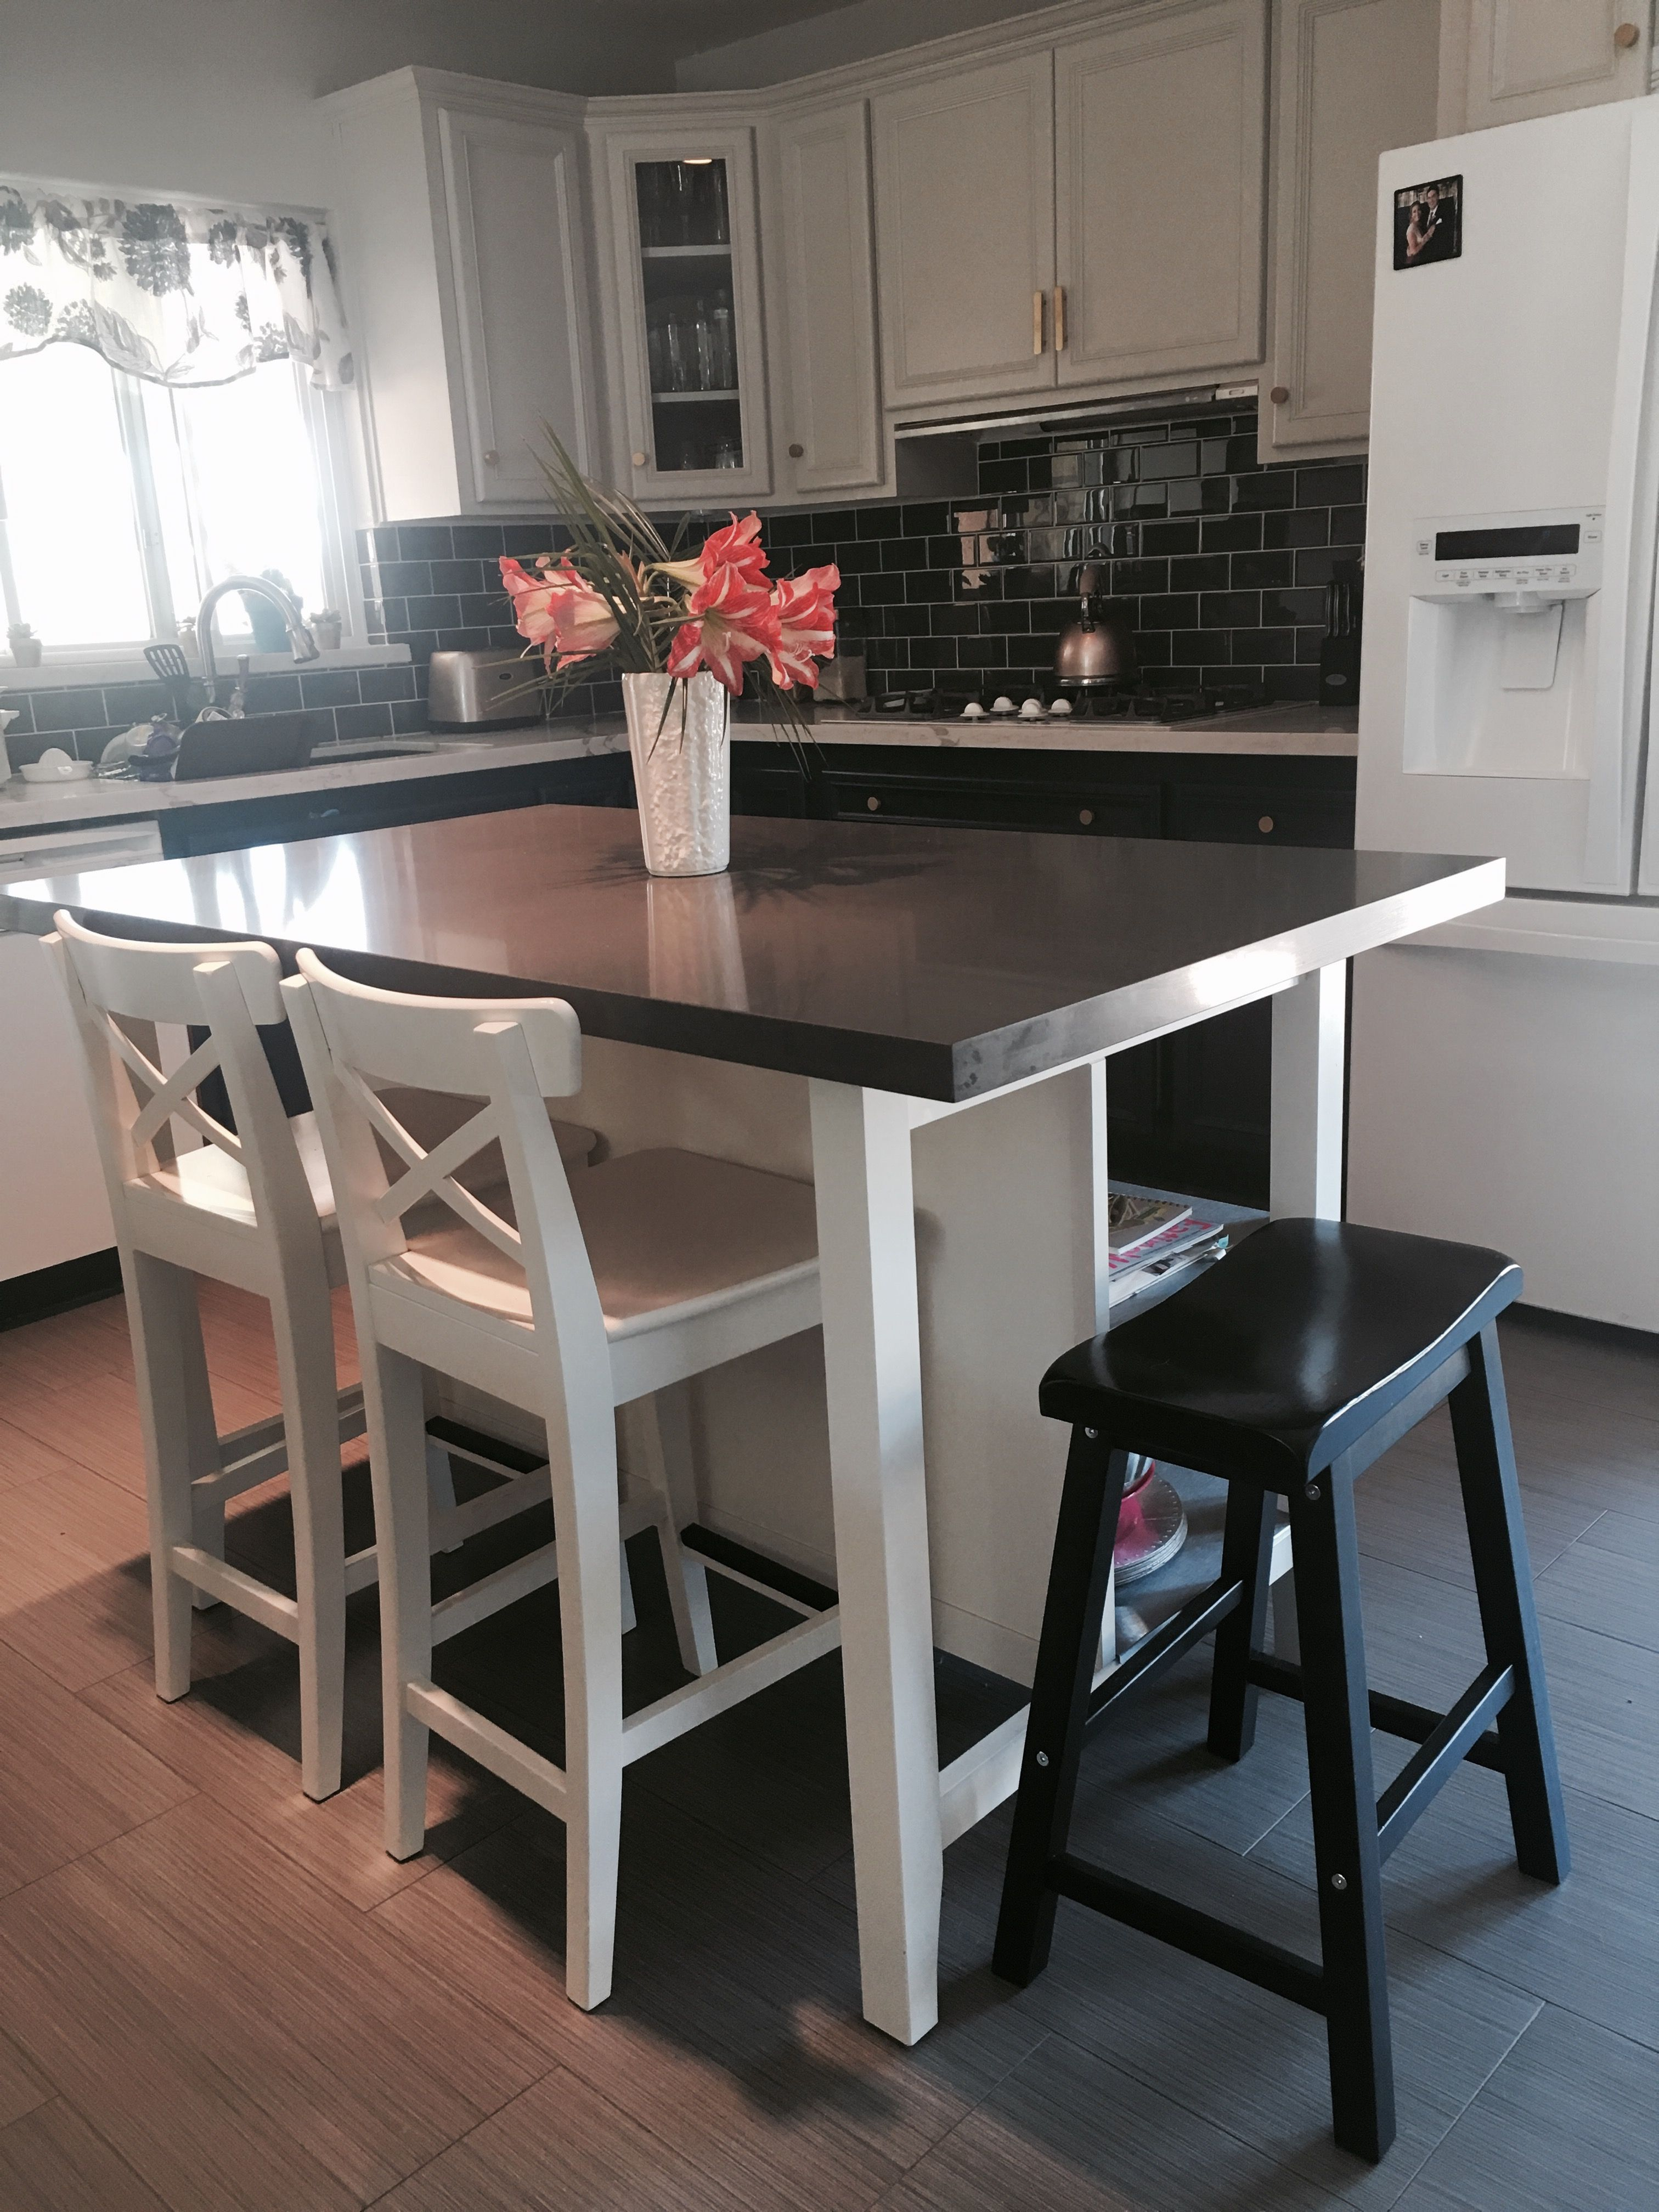 Ikea Stenstorp Kitchen Island Hack. Here is another view